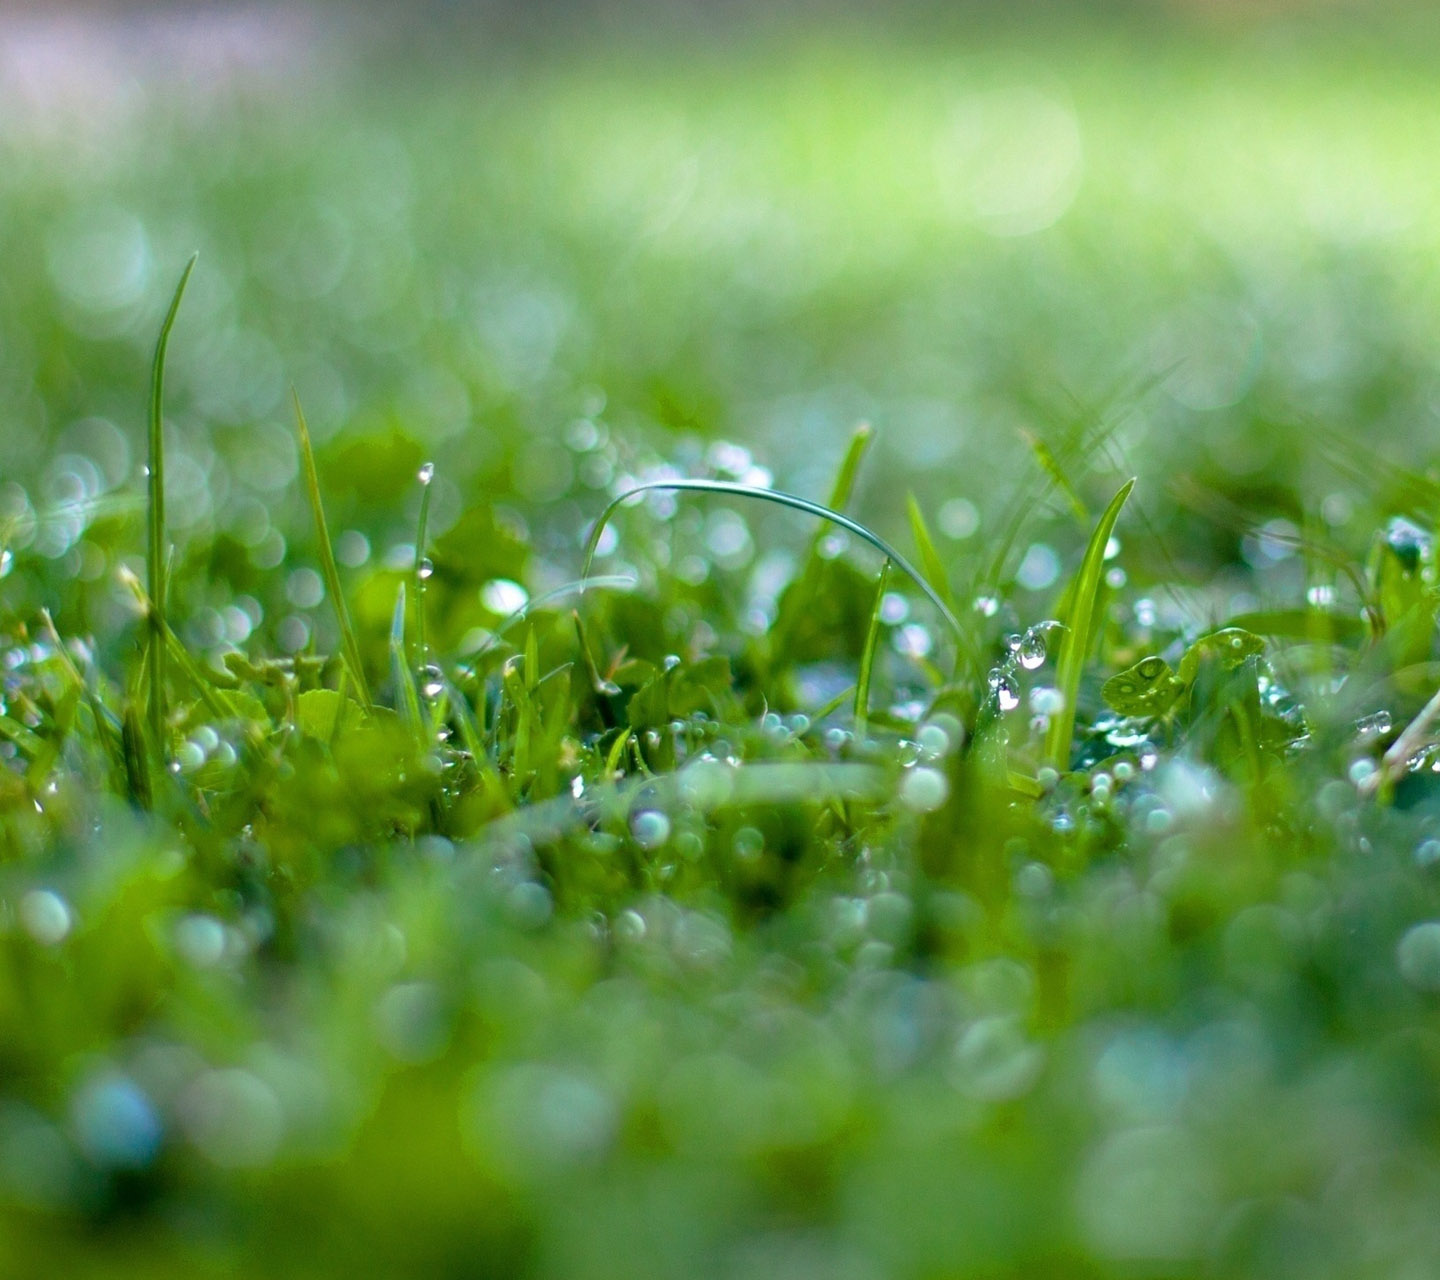 all best picos: galaxy s3 wallpaper - wet grass bokeh - hd